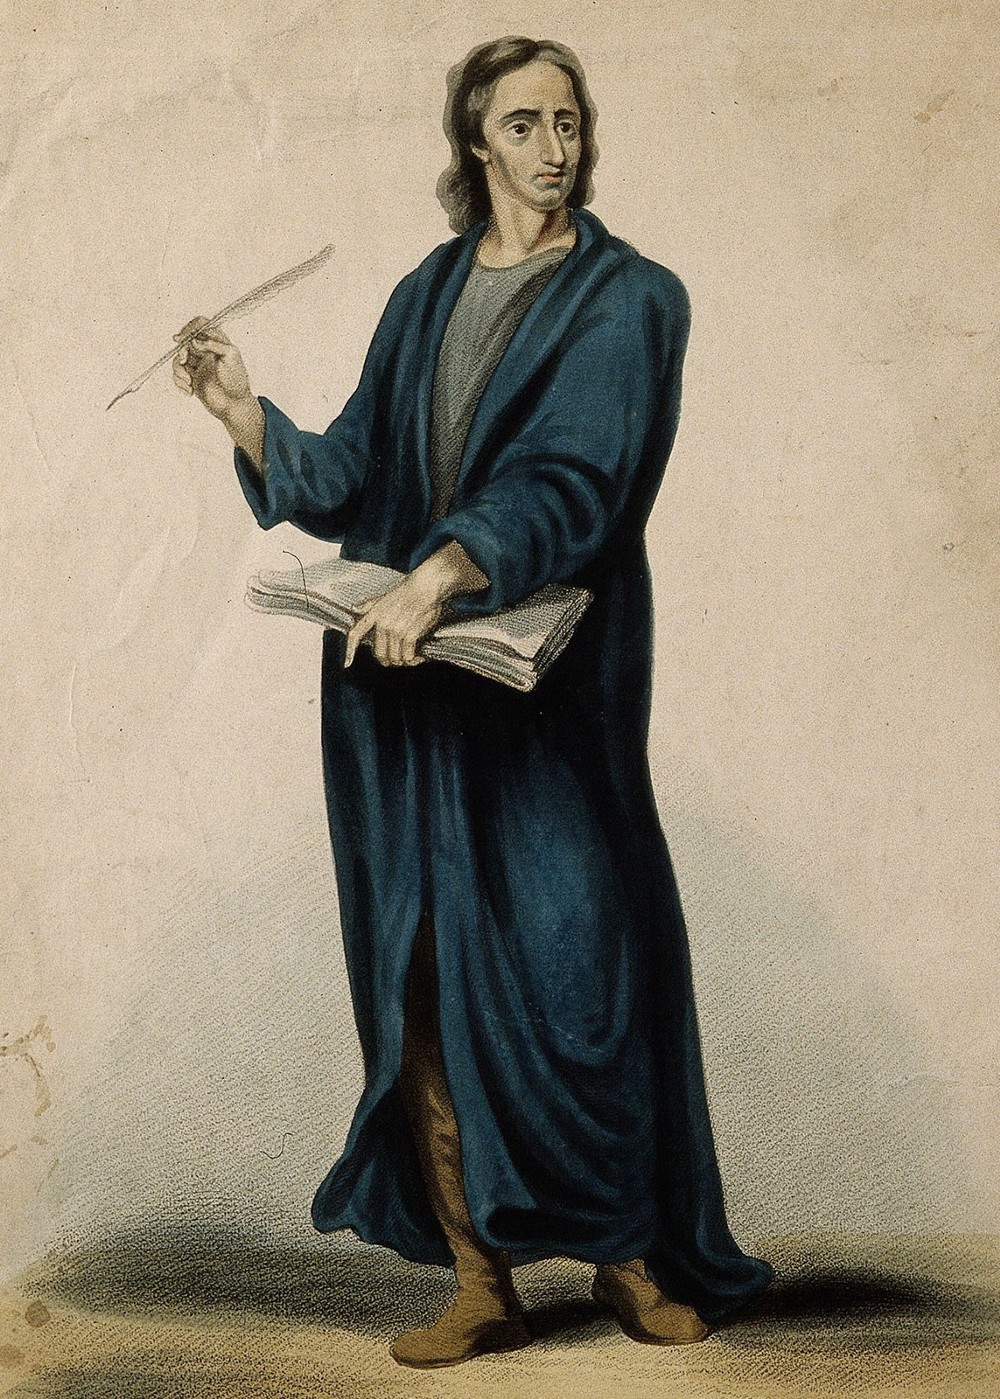 John Locke, coloured stipple engraving by James Godby after G.B. Cipriani. Wellcome Library, London (no. V0003673)